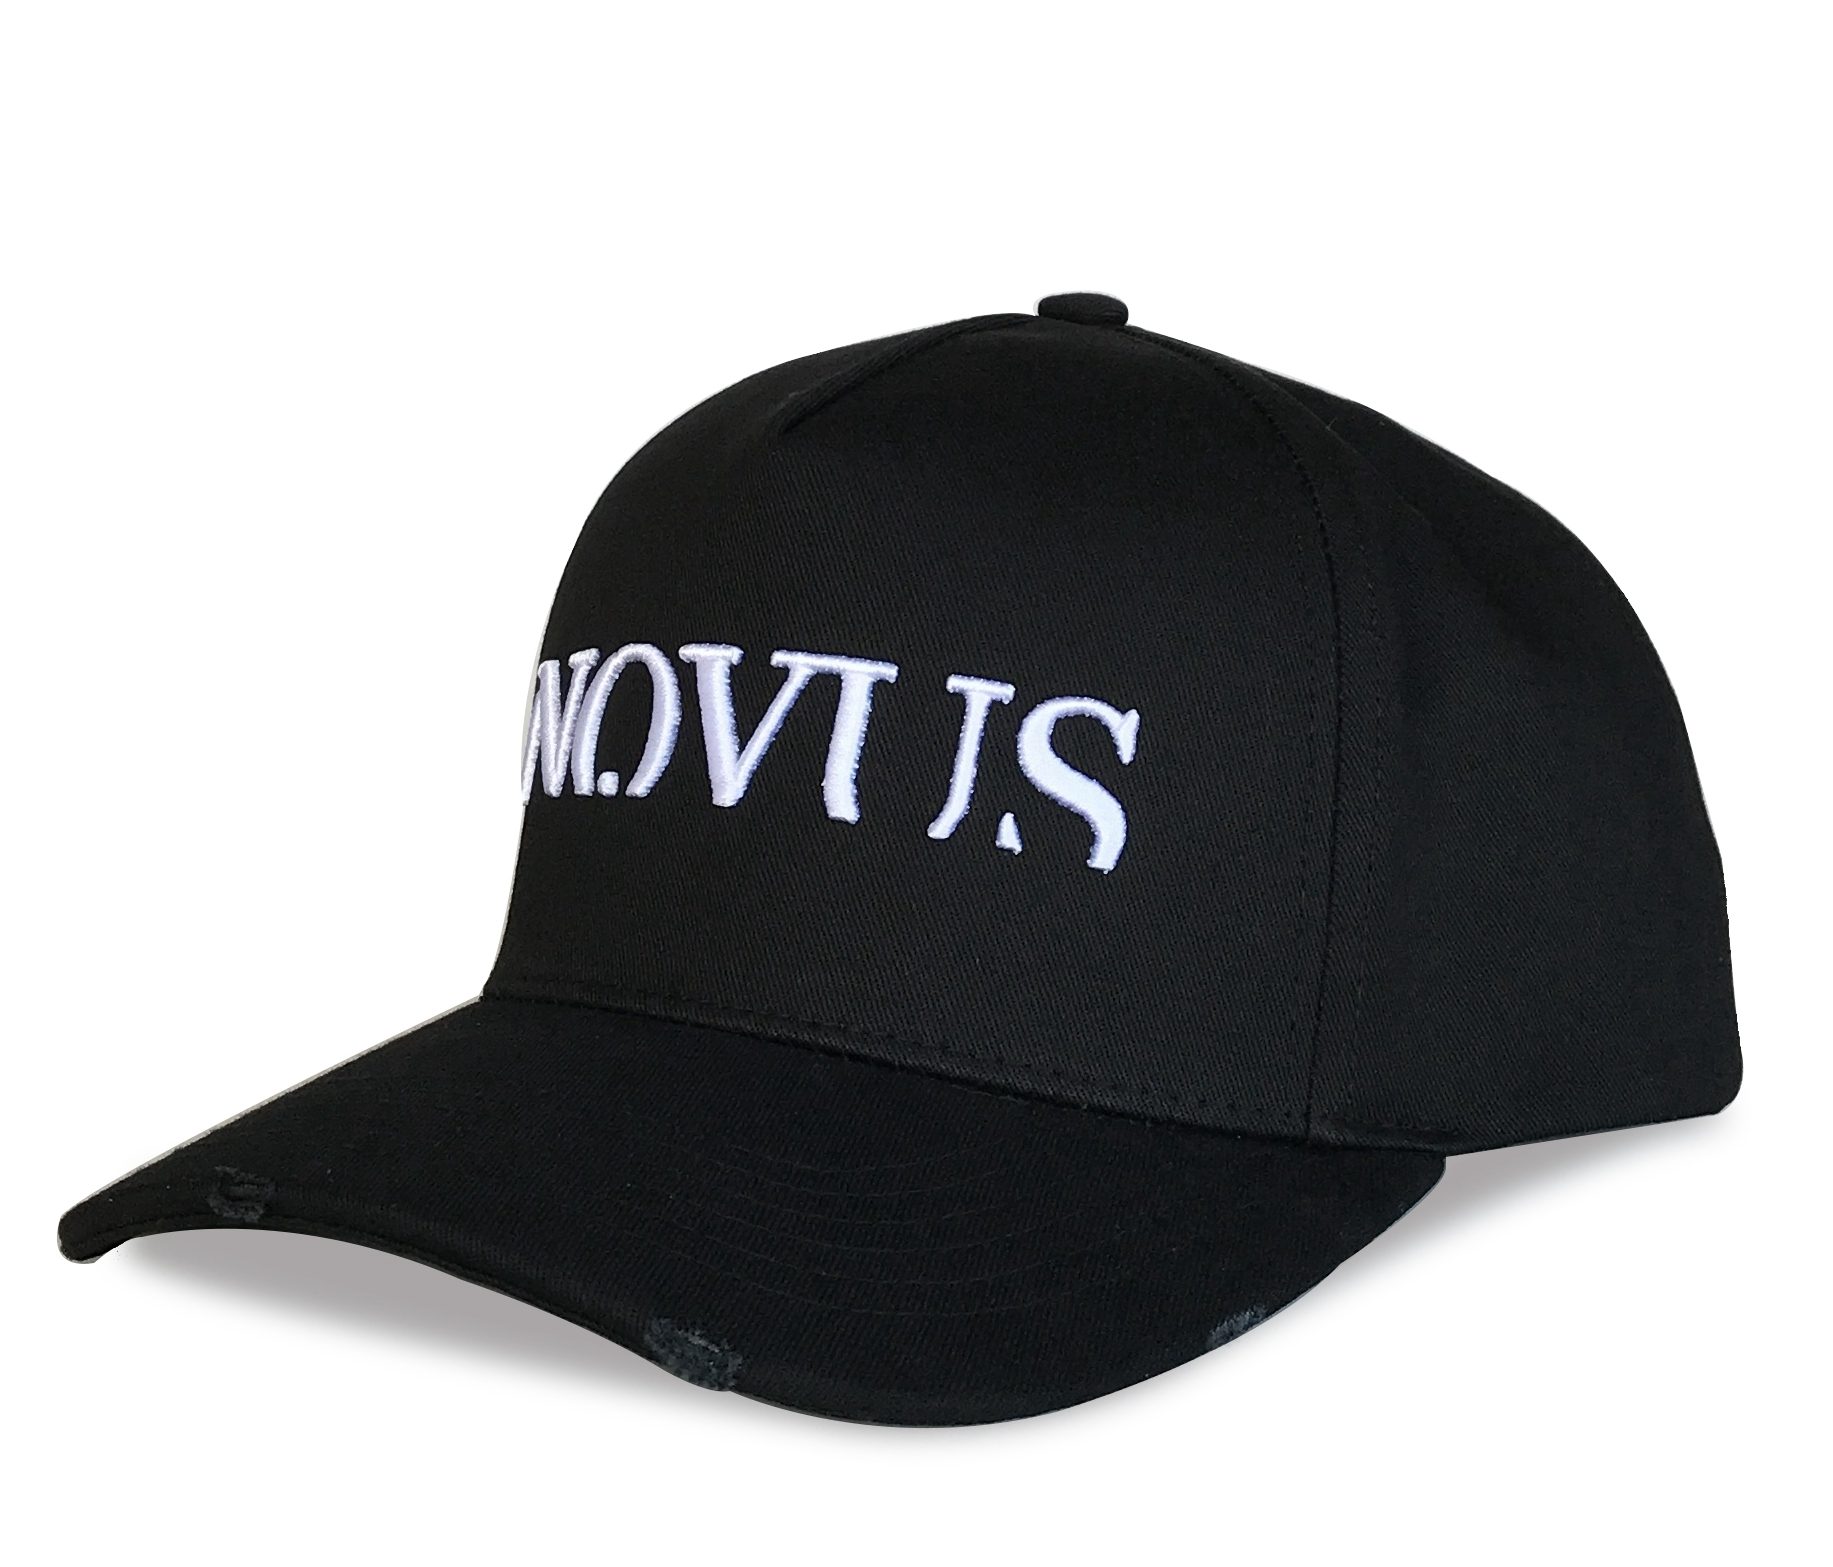 High quality black cotton 6 panel baseball cap supplier